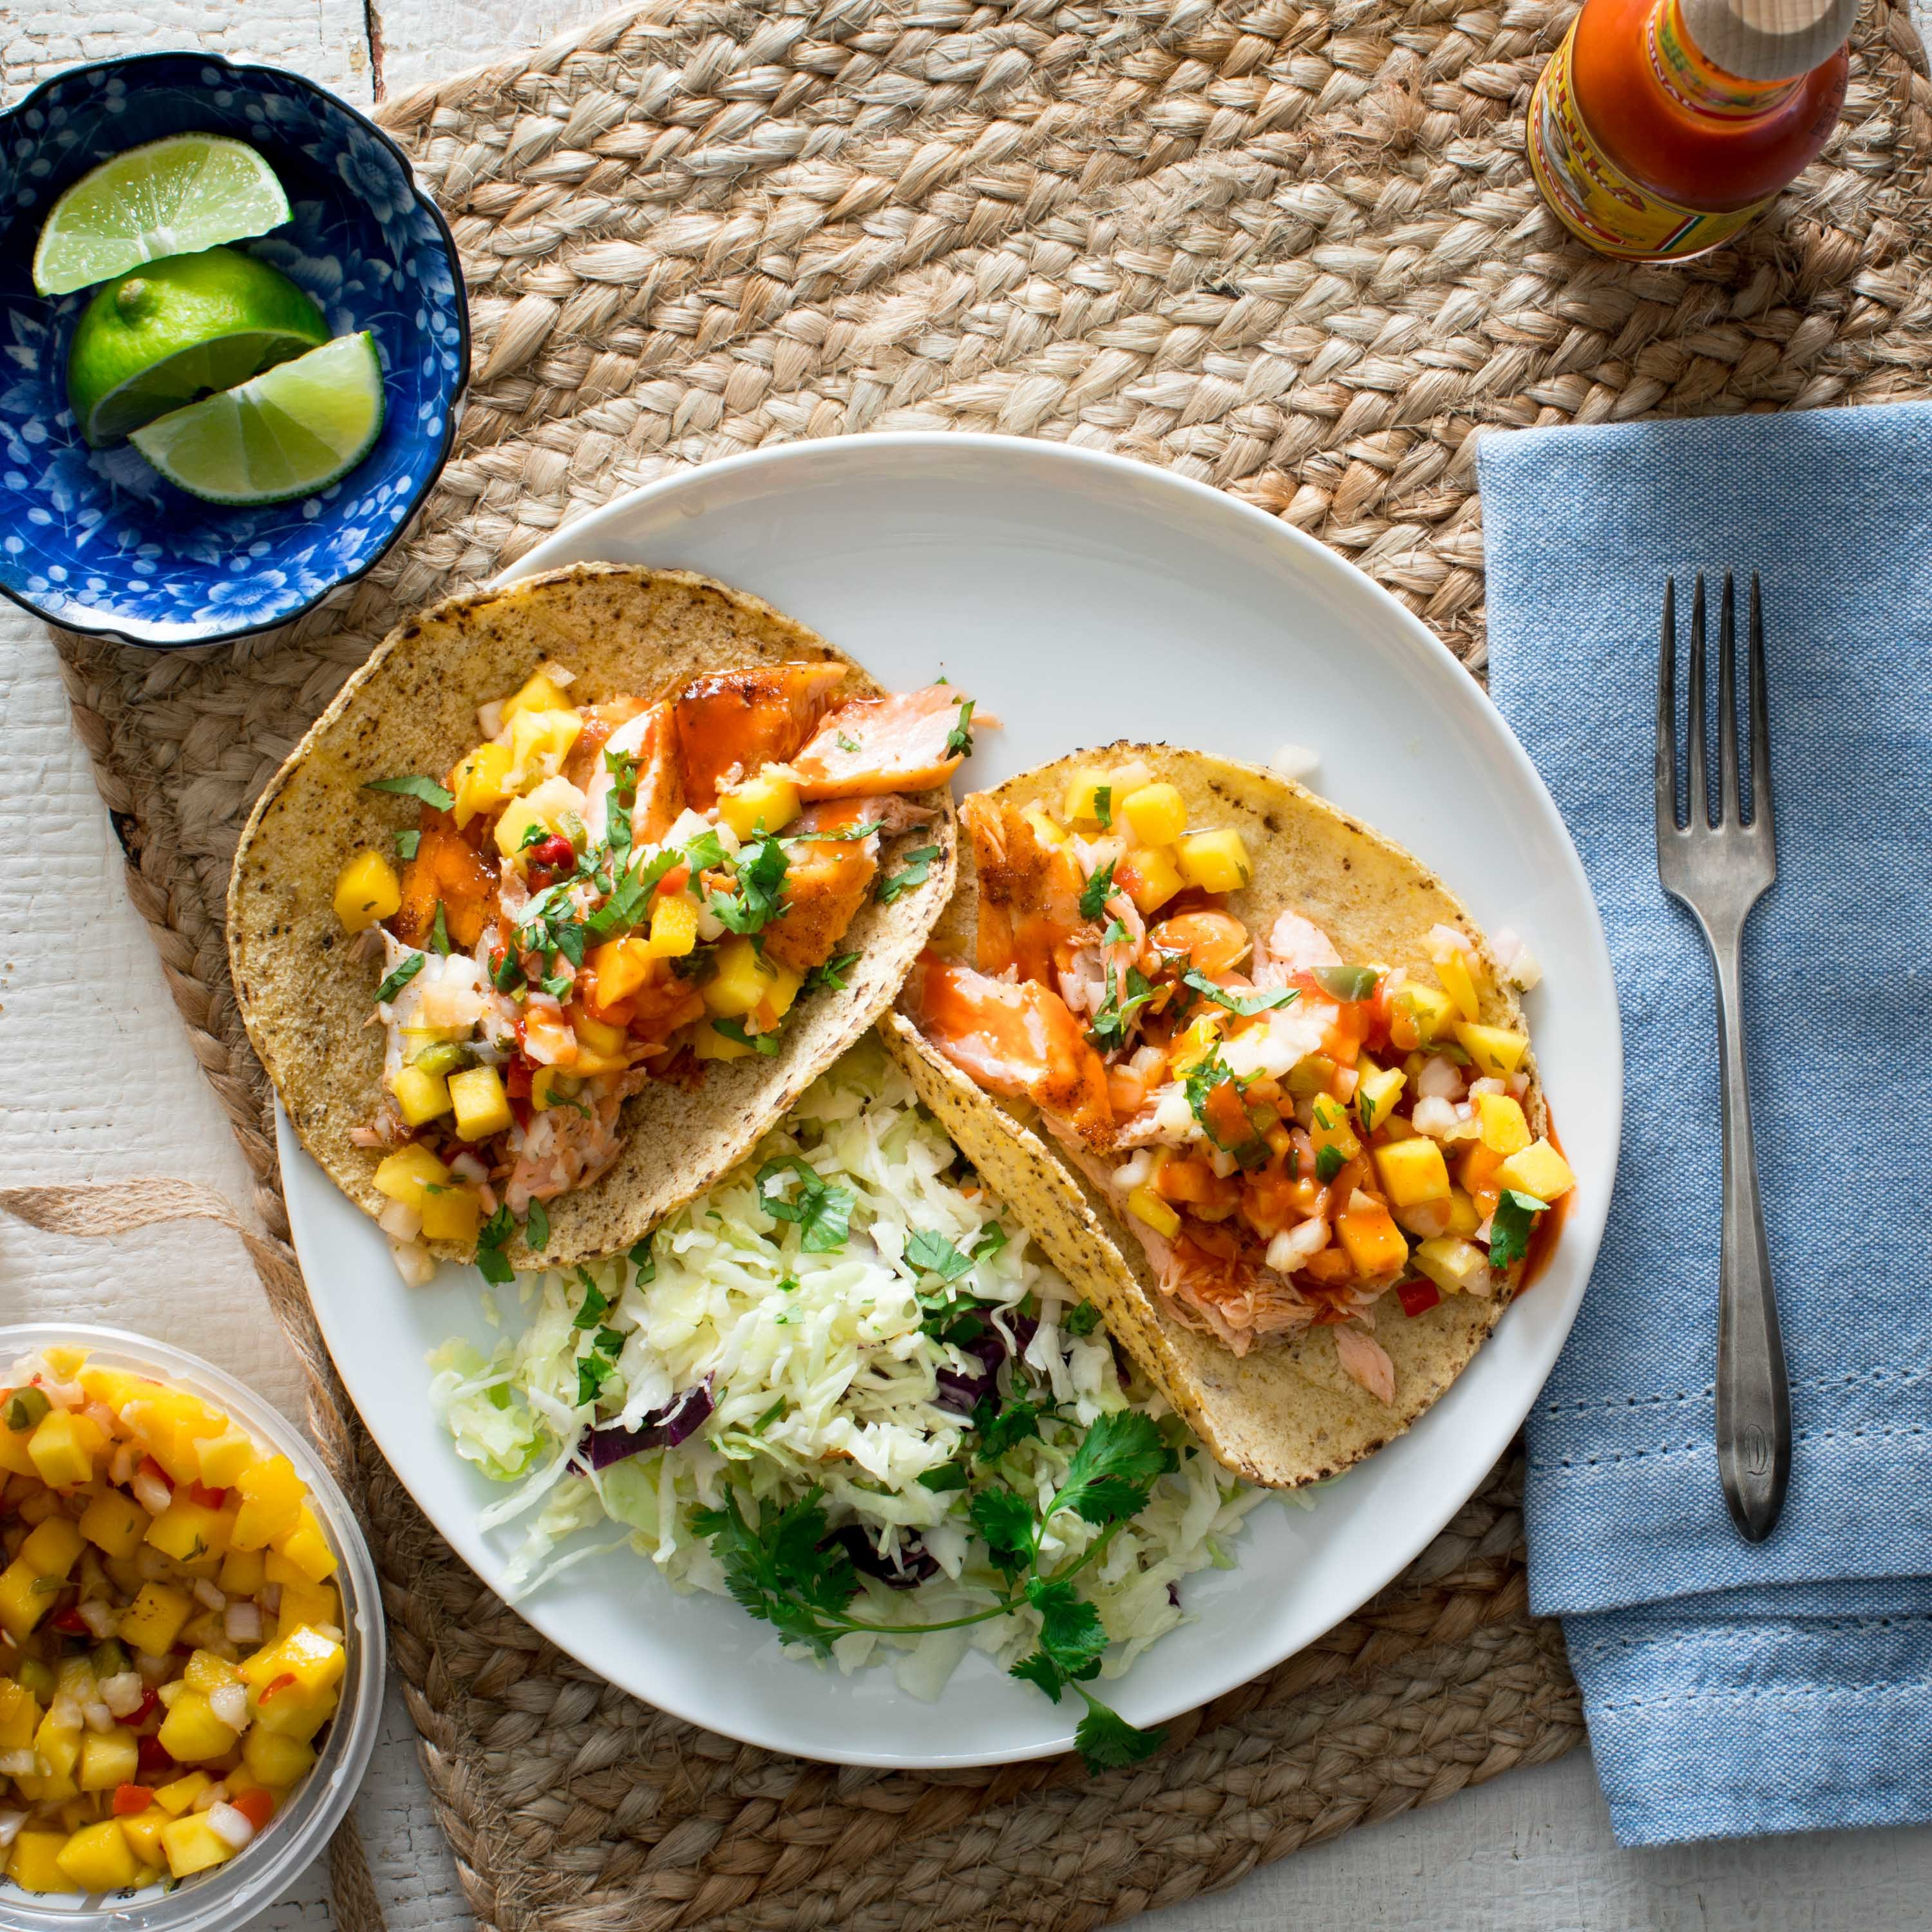 An easy-to-make slaw served on the side of these salmon tacos makes for a filling and fast weeknight dinner. If you prefer more heat in these fish tacos, simply add a pinch or two of chipotle chile powder or cayenne with the chili powder.